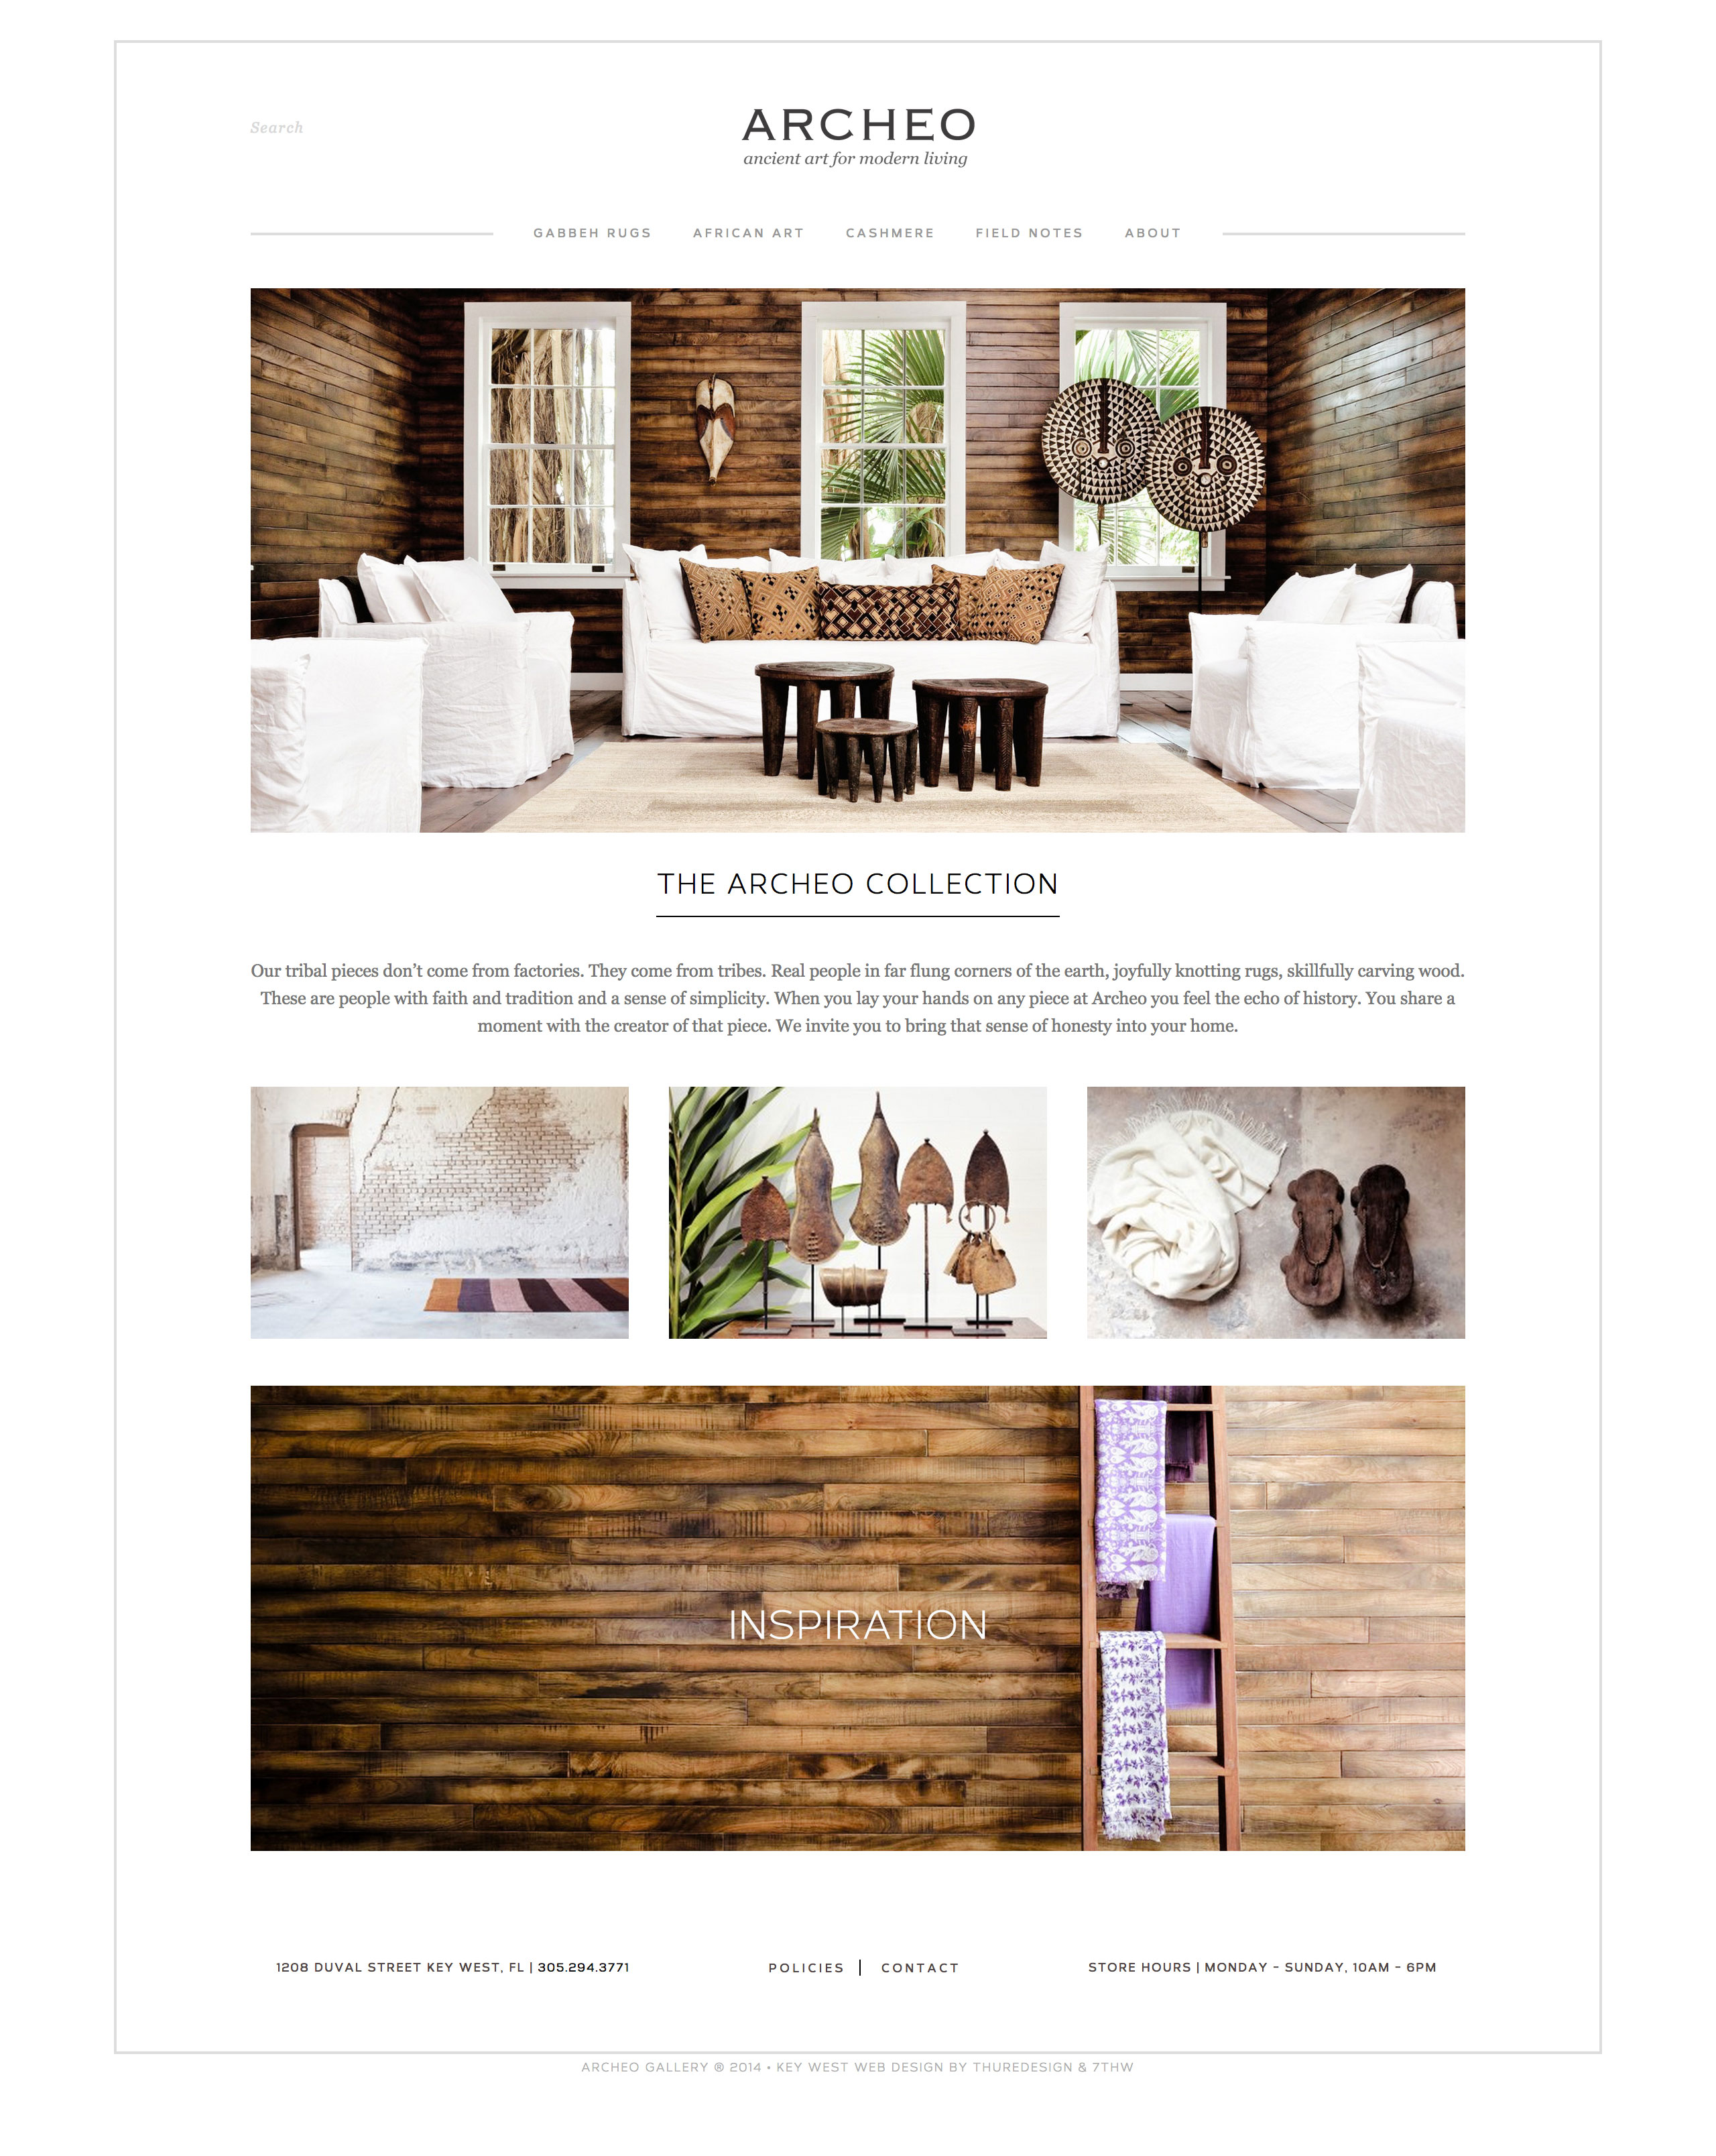 archeo gallery key west web design home